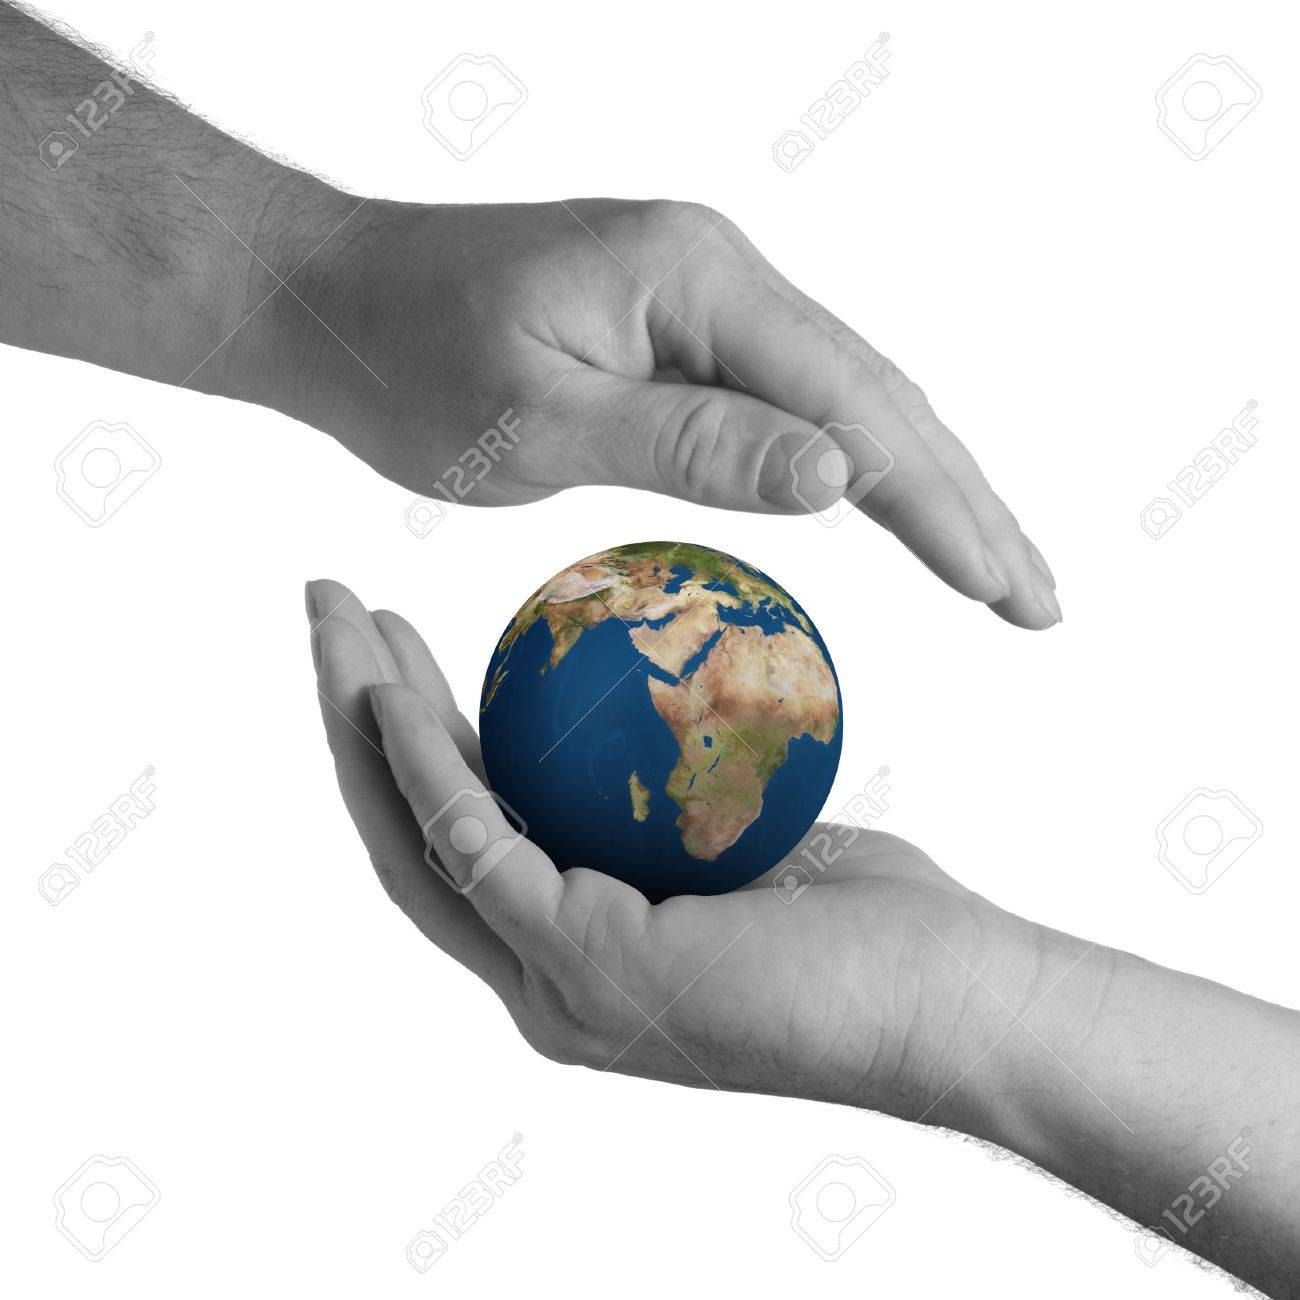 Planet the earth in human hands. Concept about preservation of the environment Stock Photo - 3379613